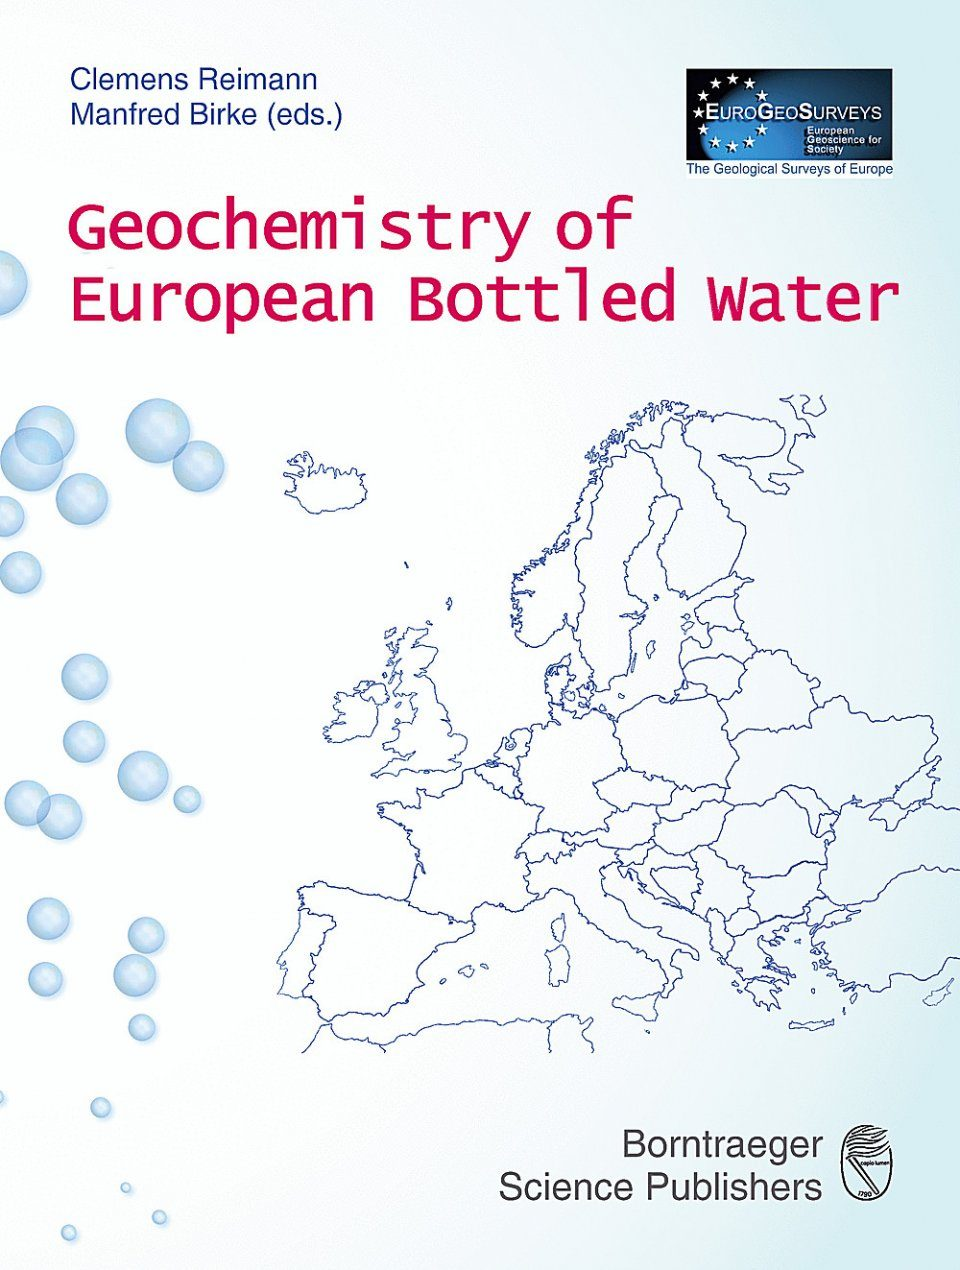 Geochemistry of European Bottled Water